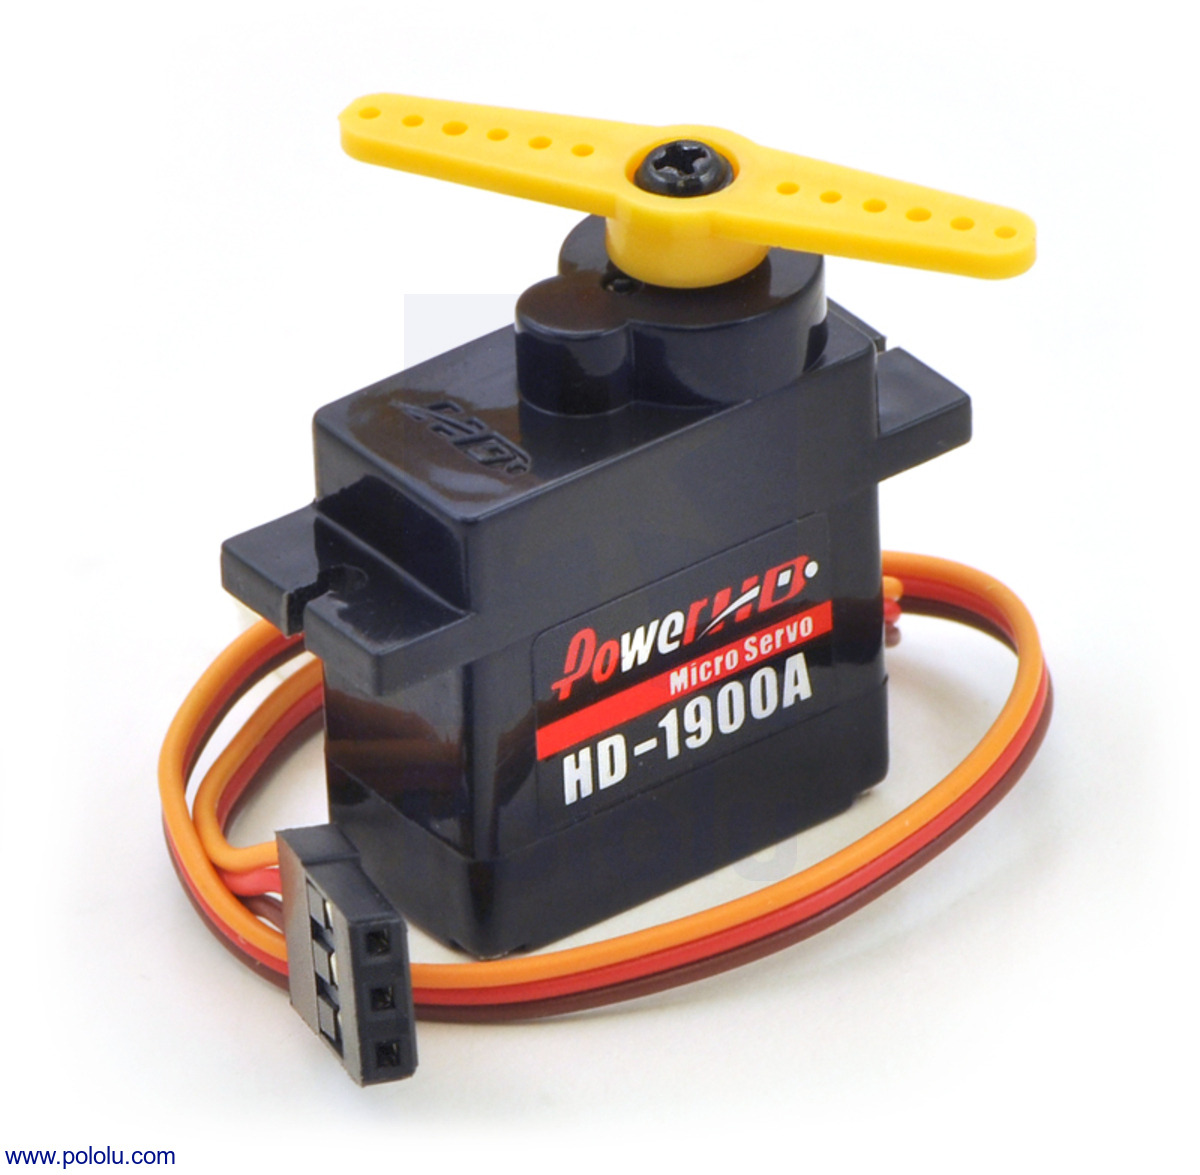 Pololu Rc Servos Tips On Powering Receivers Radios And Vehicles With Lipos New